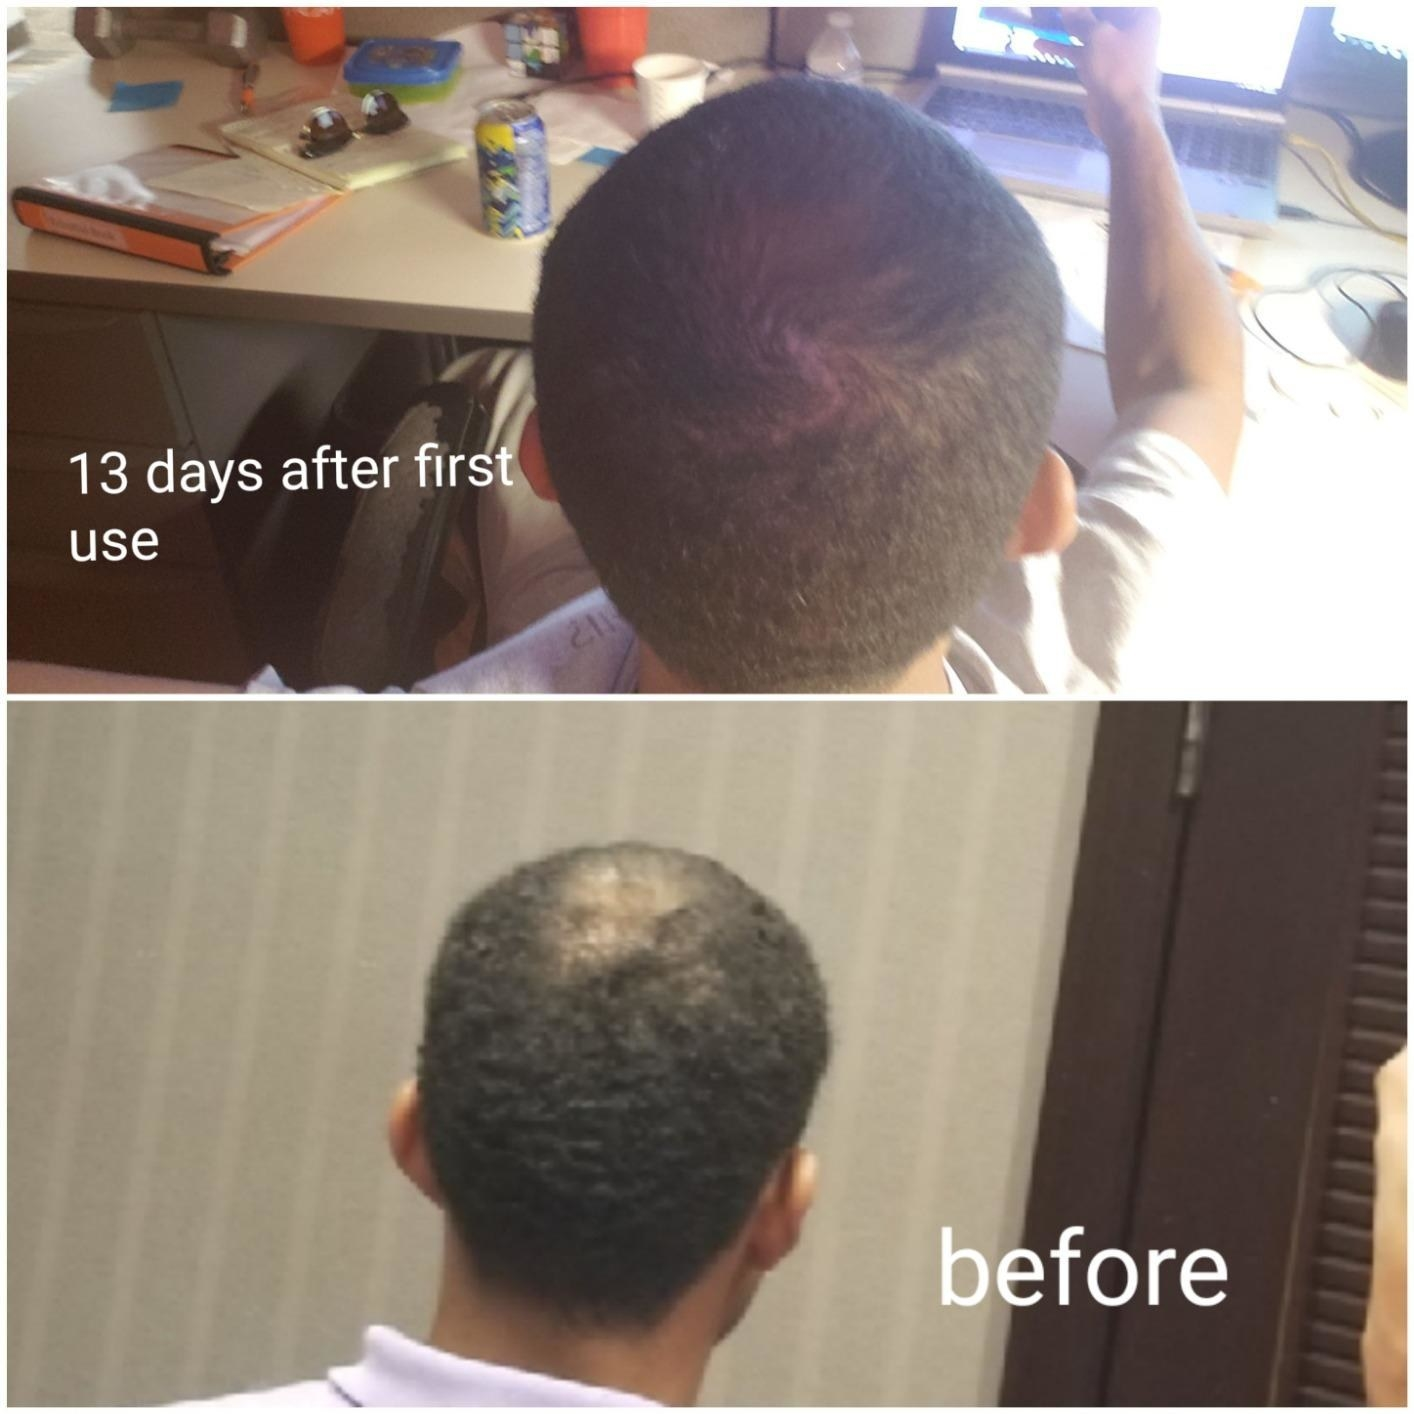 reviewer with a bald spot that says before and the same reviewer with more hair that says 13 days after first use